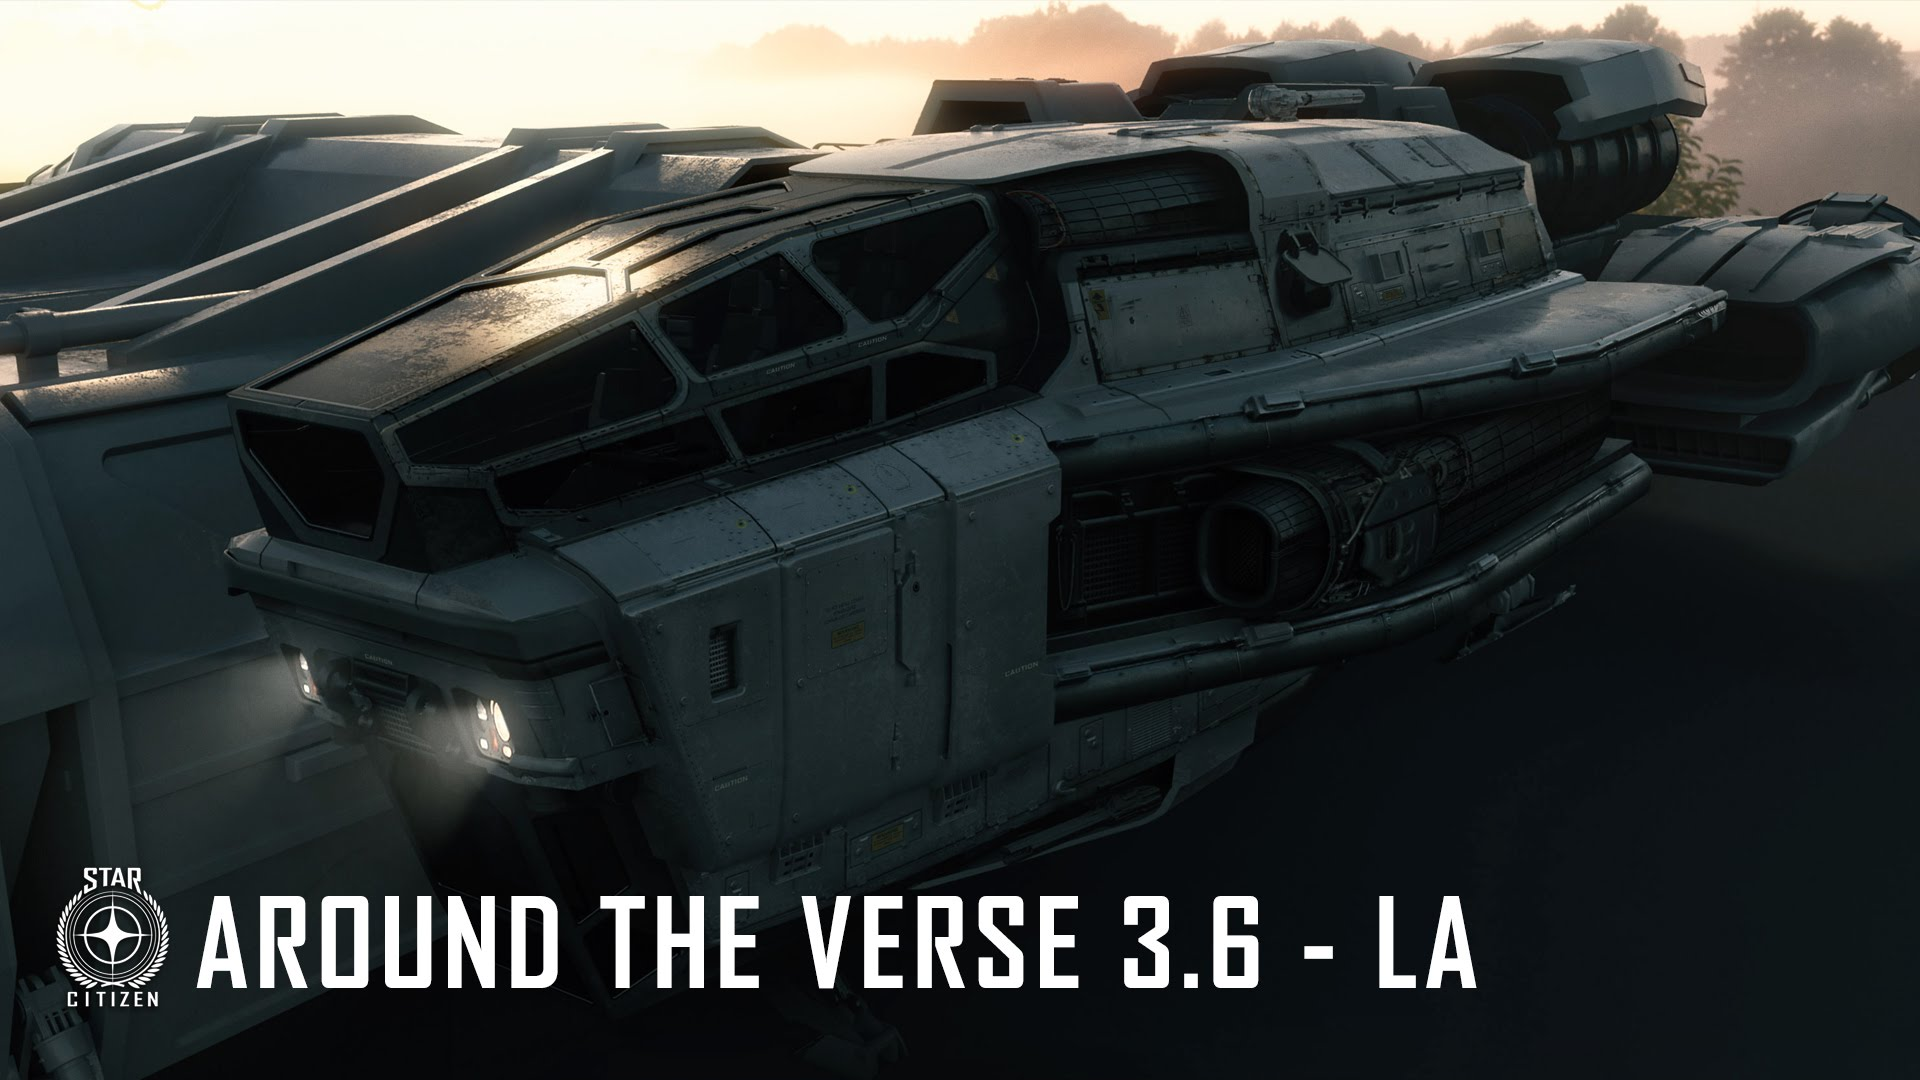 Star Citizen: Around The Verse 3.6 – LA